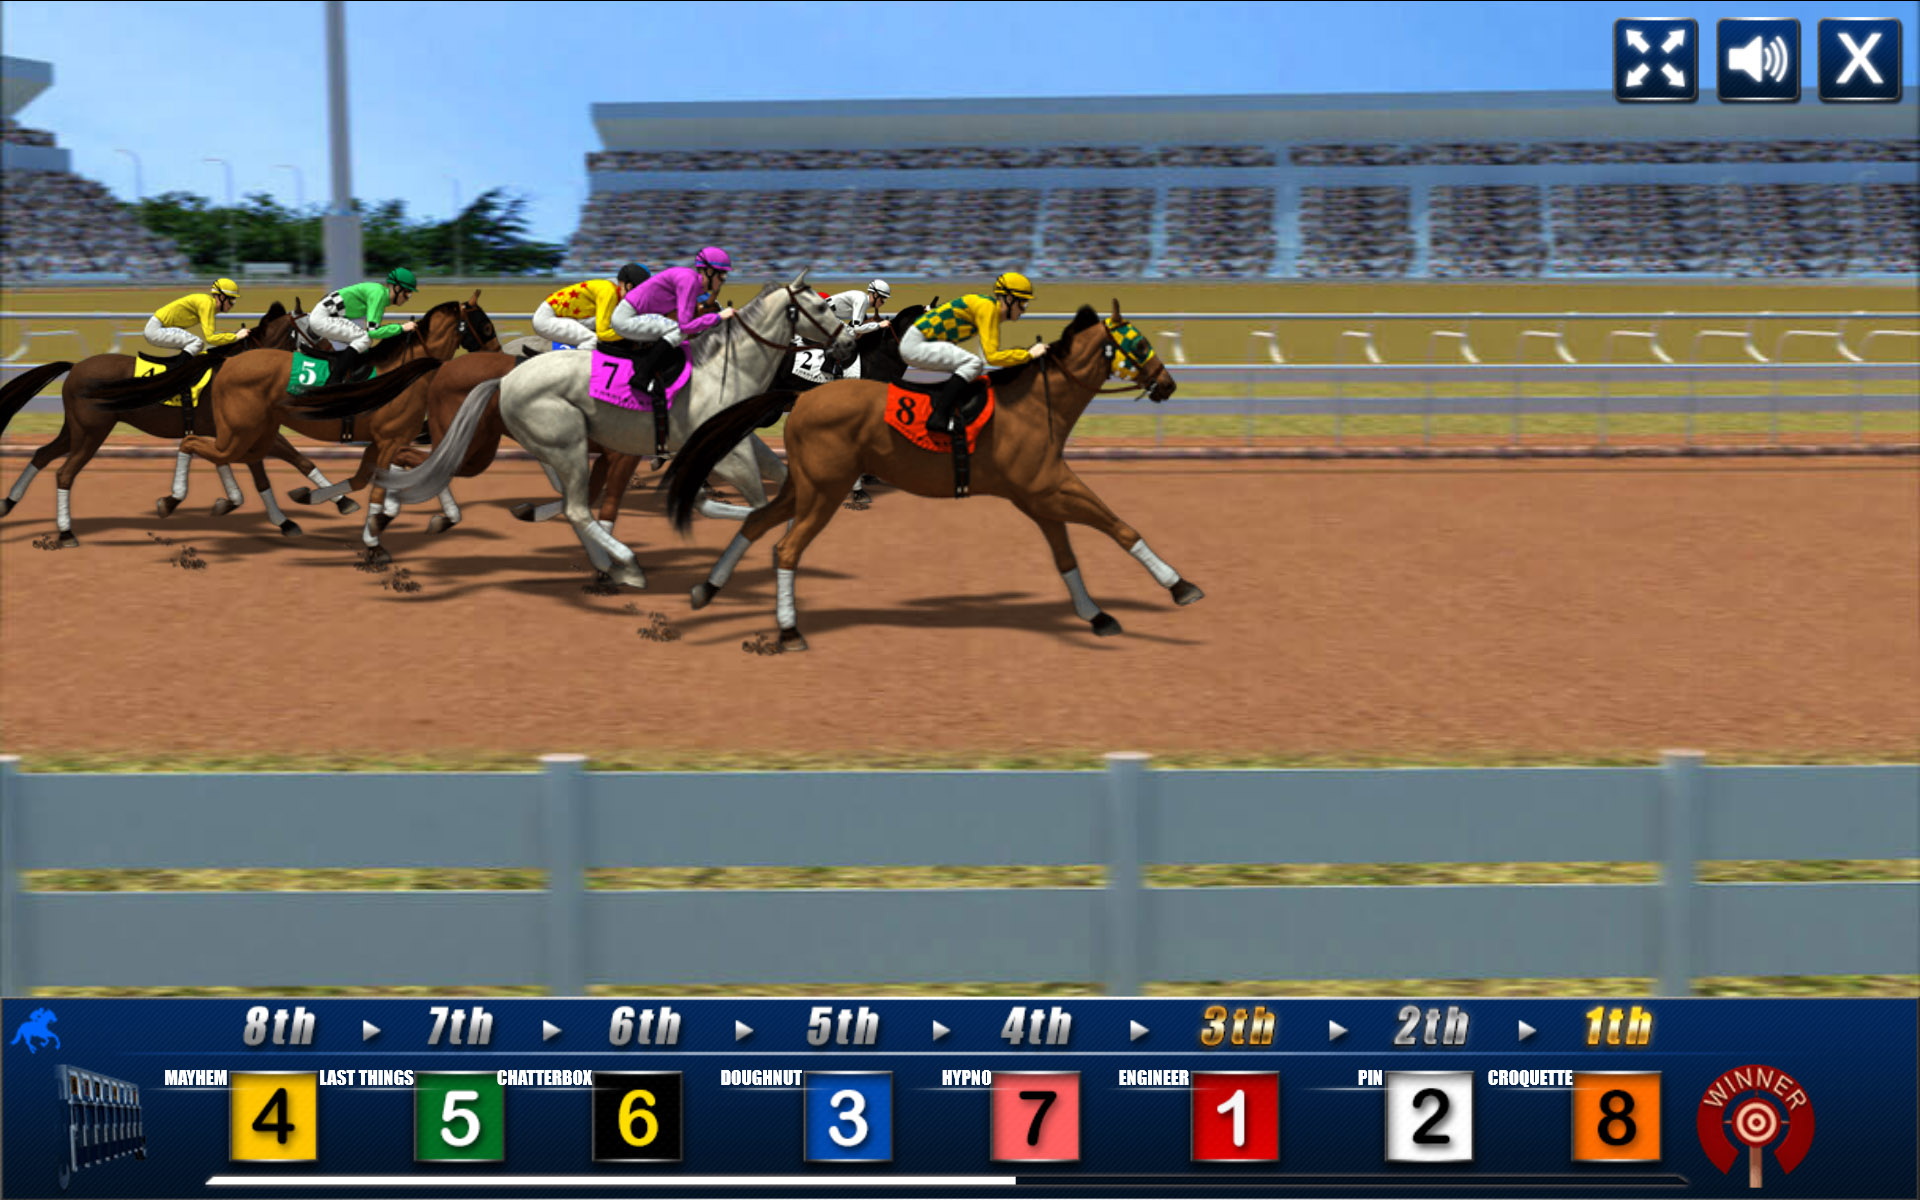 Horse racing betting pc game sports betting case in new jersey